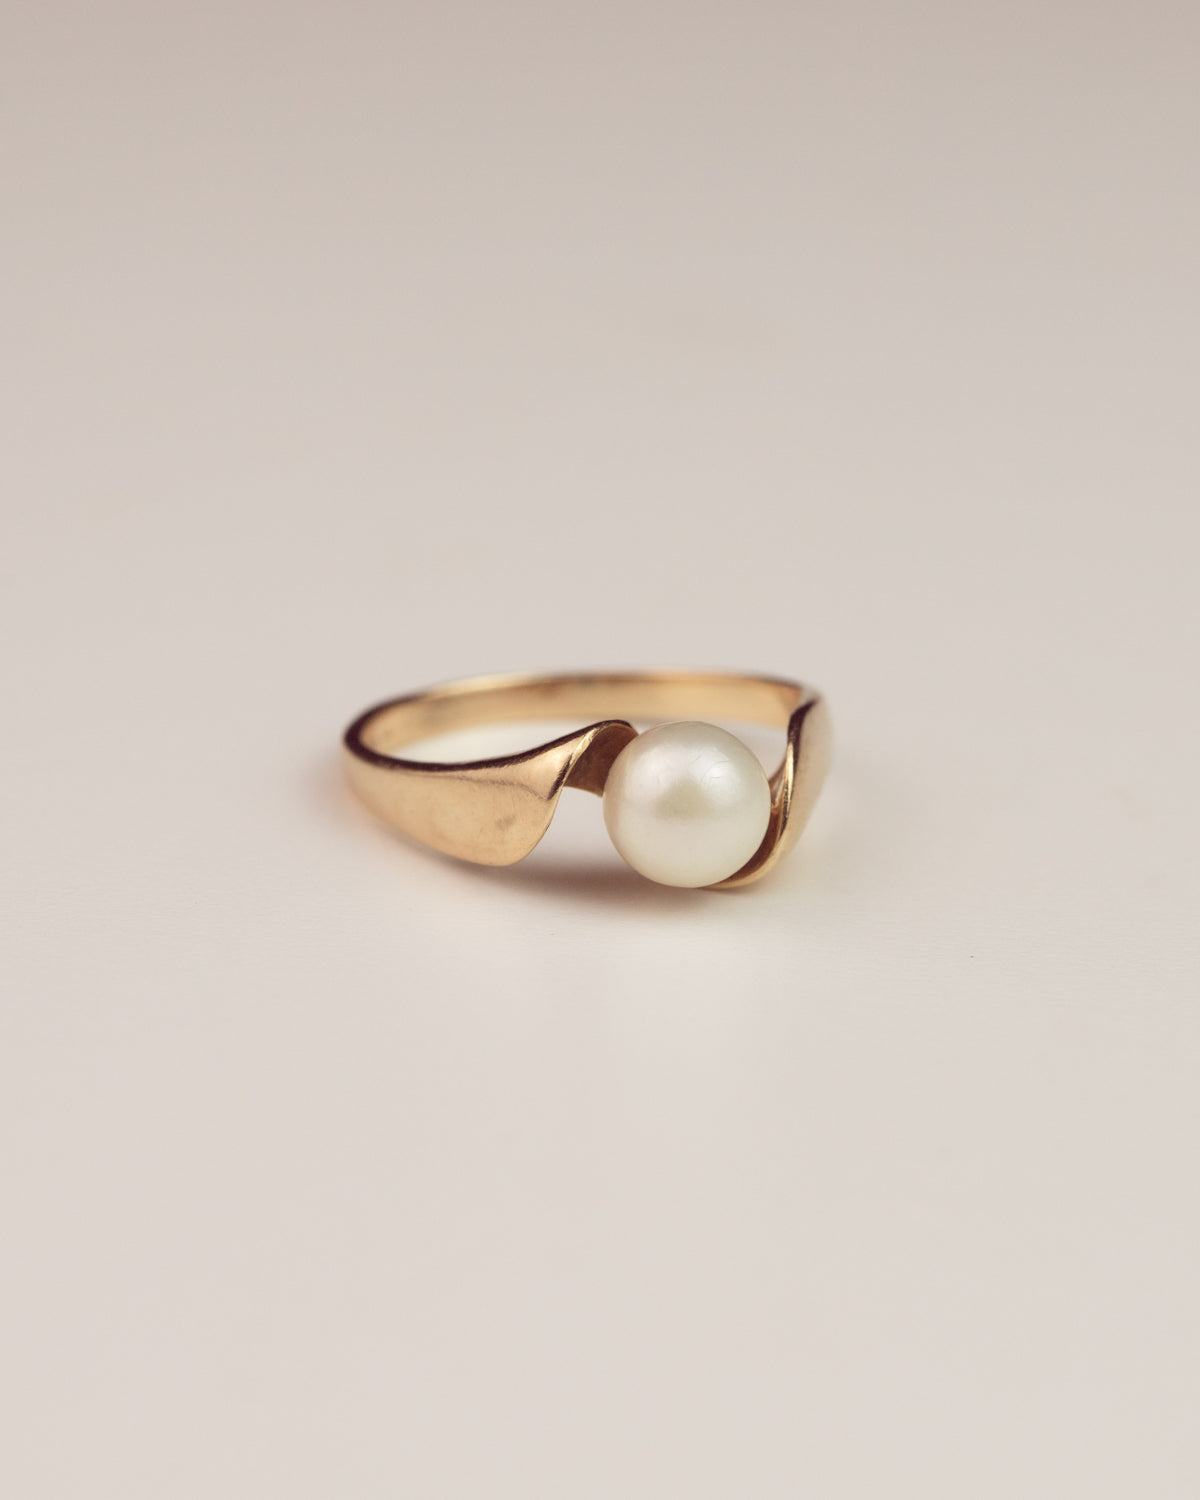 Image of Wren Exclusive Vintage 14ct Gold Pearl Ring